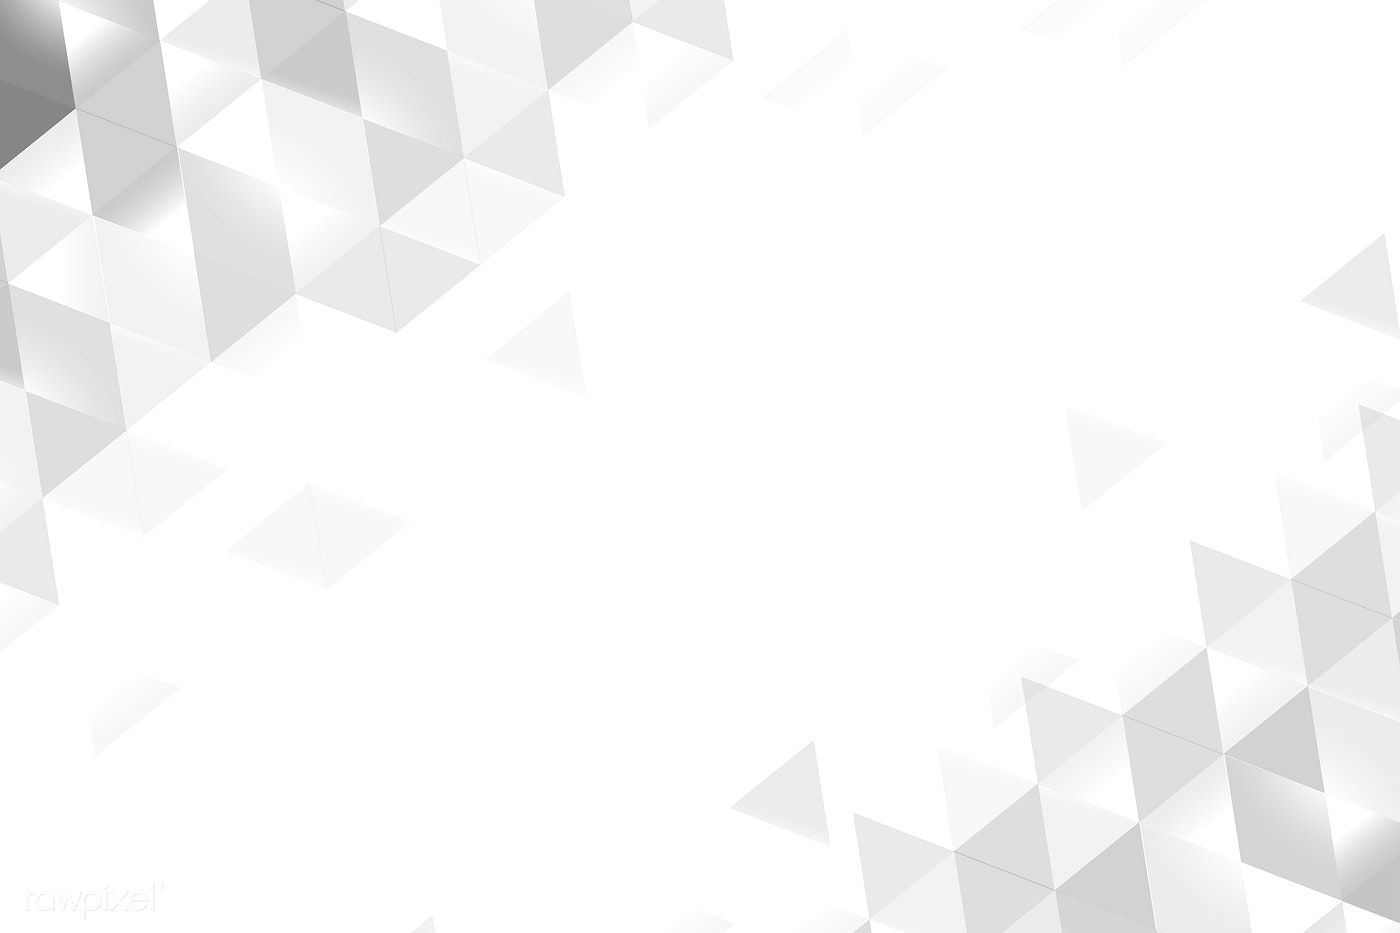 White Prism Background Design Vector Free Image By Rawpixel Com